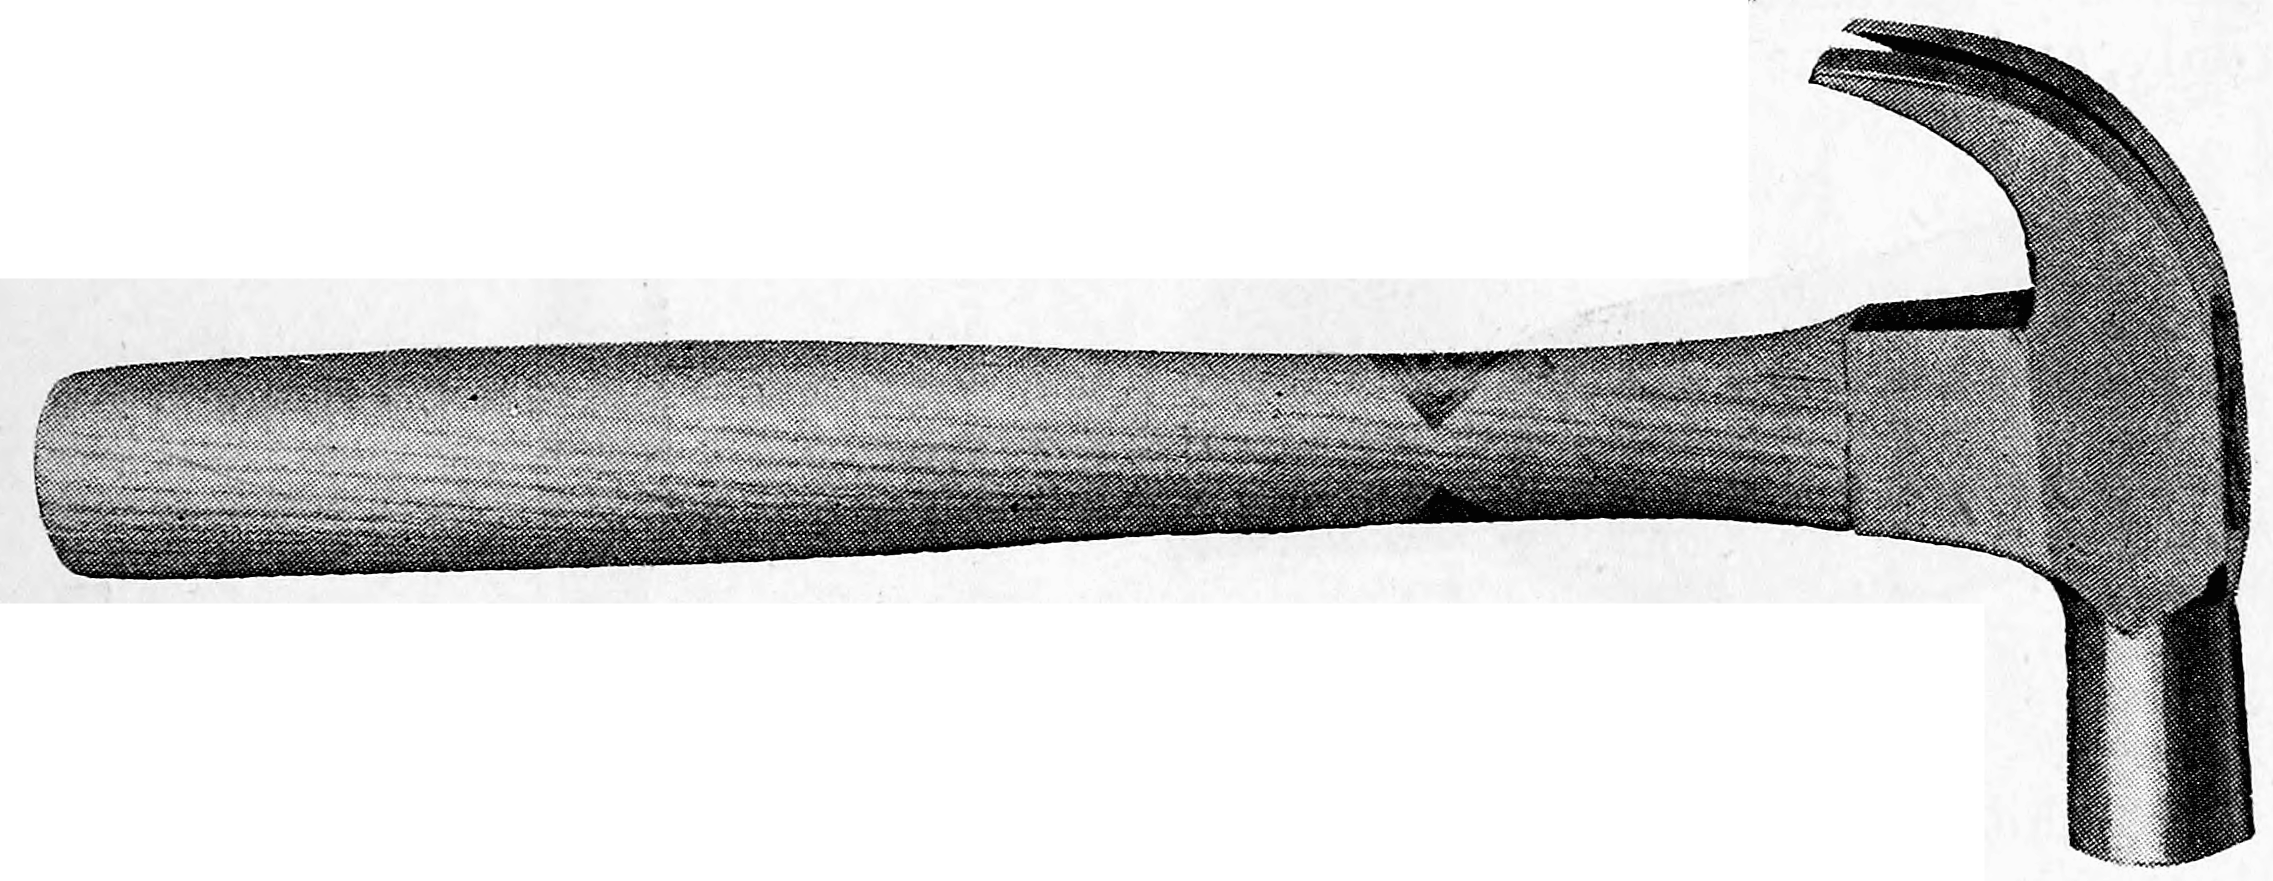 Cassells Carpentry.92 claw hammer.png English: wood working hand tools Date 1907 Source Cassells' Carpentry and Joinery Author C. W. D. Boxall